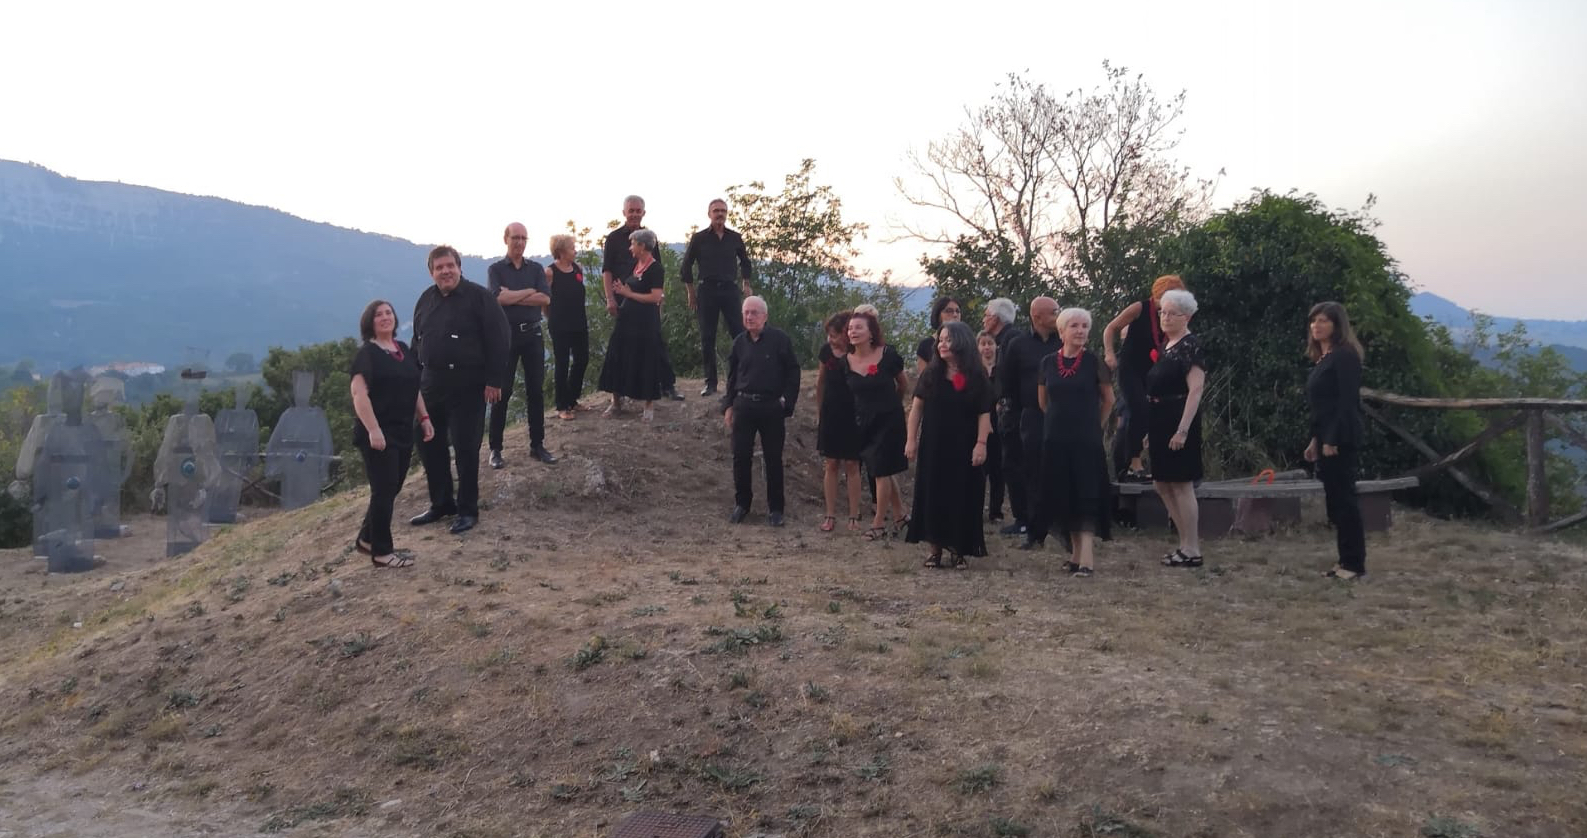 The Carla Amori Chamber Choir